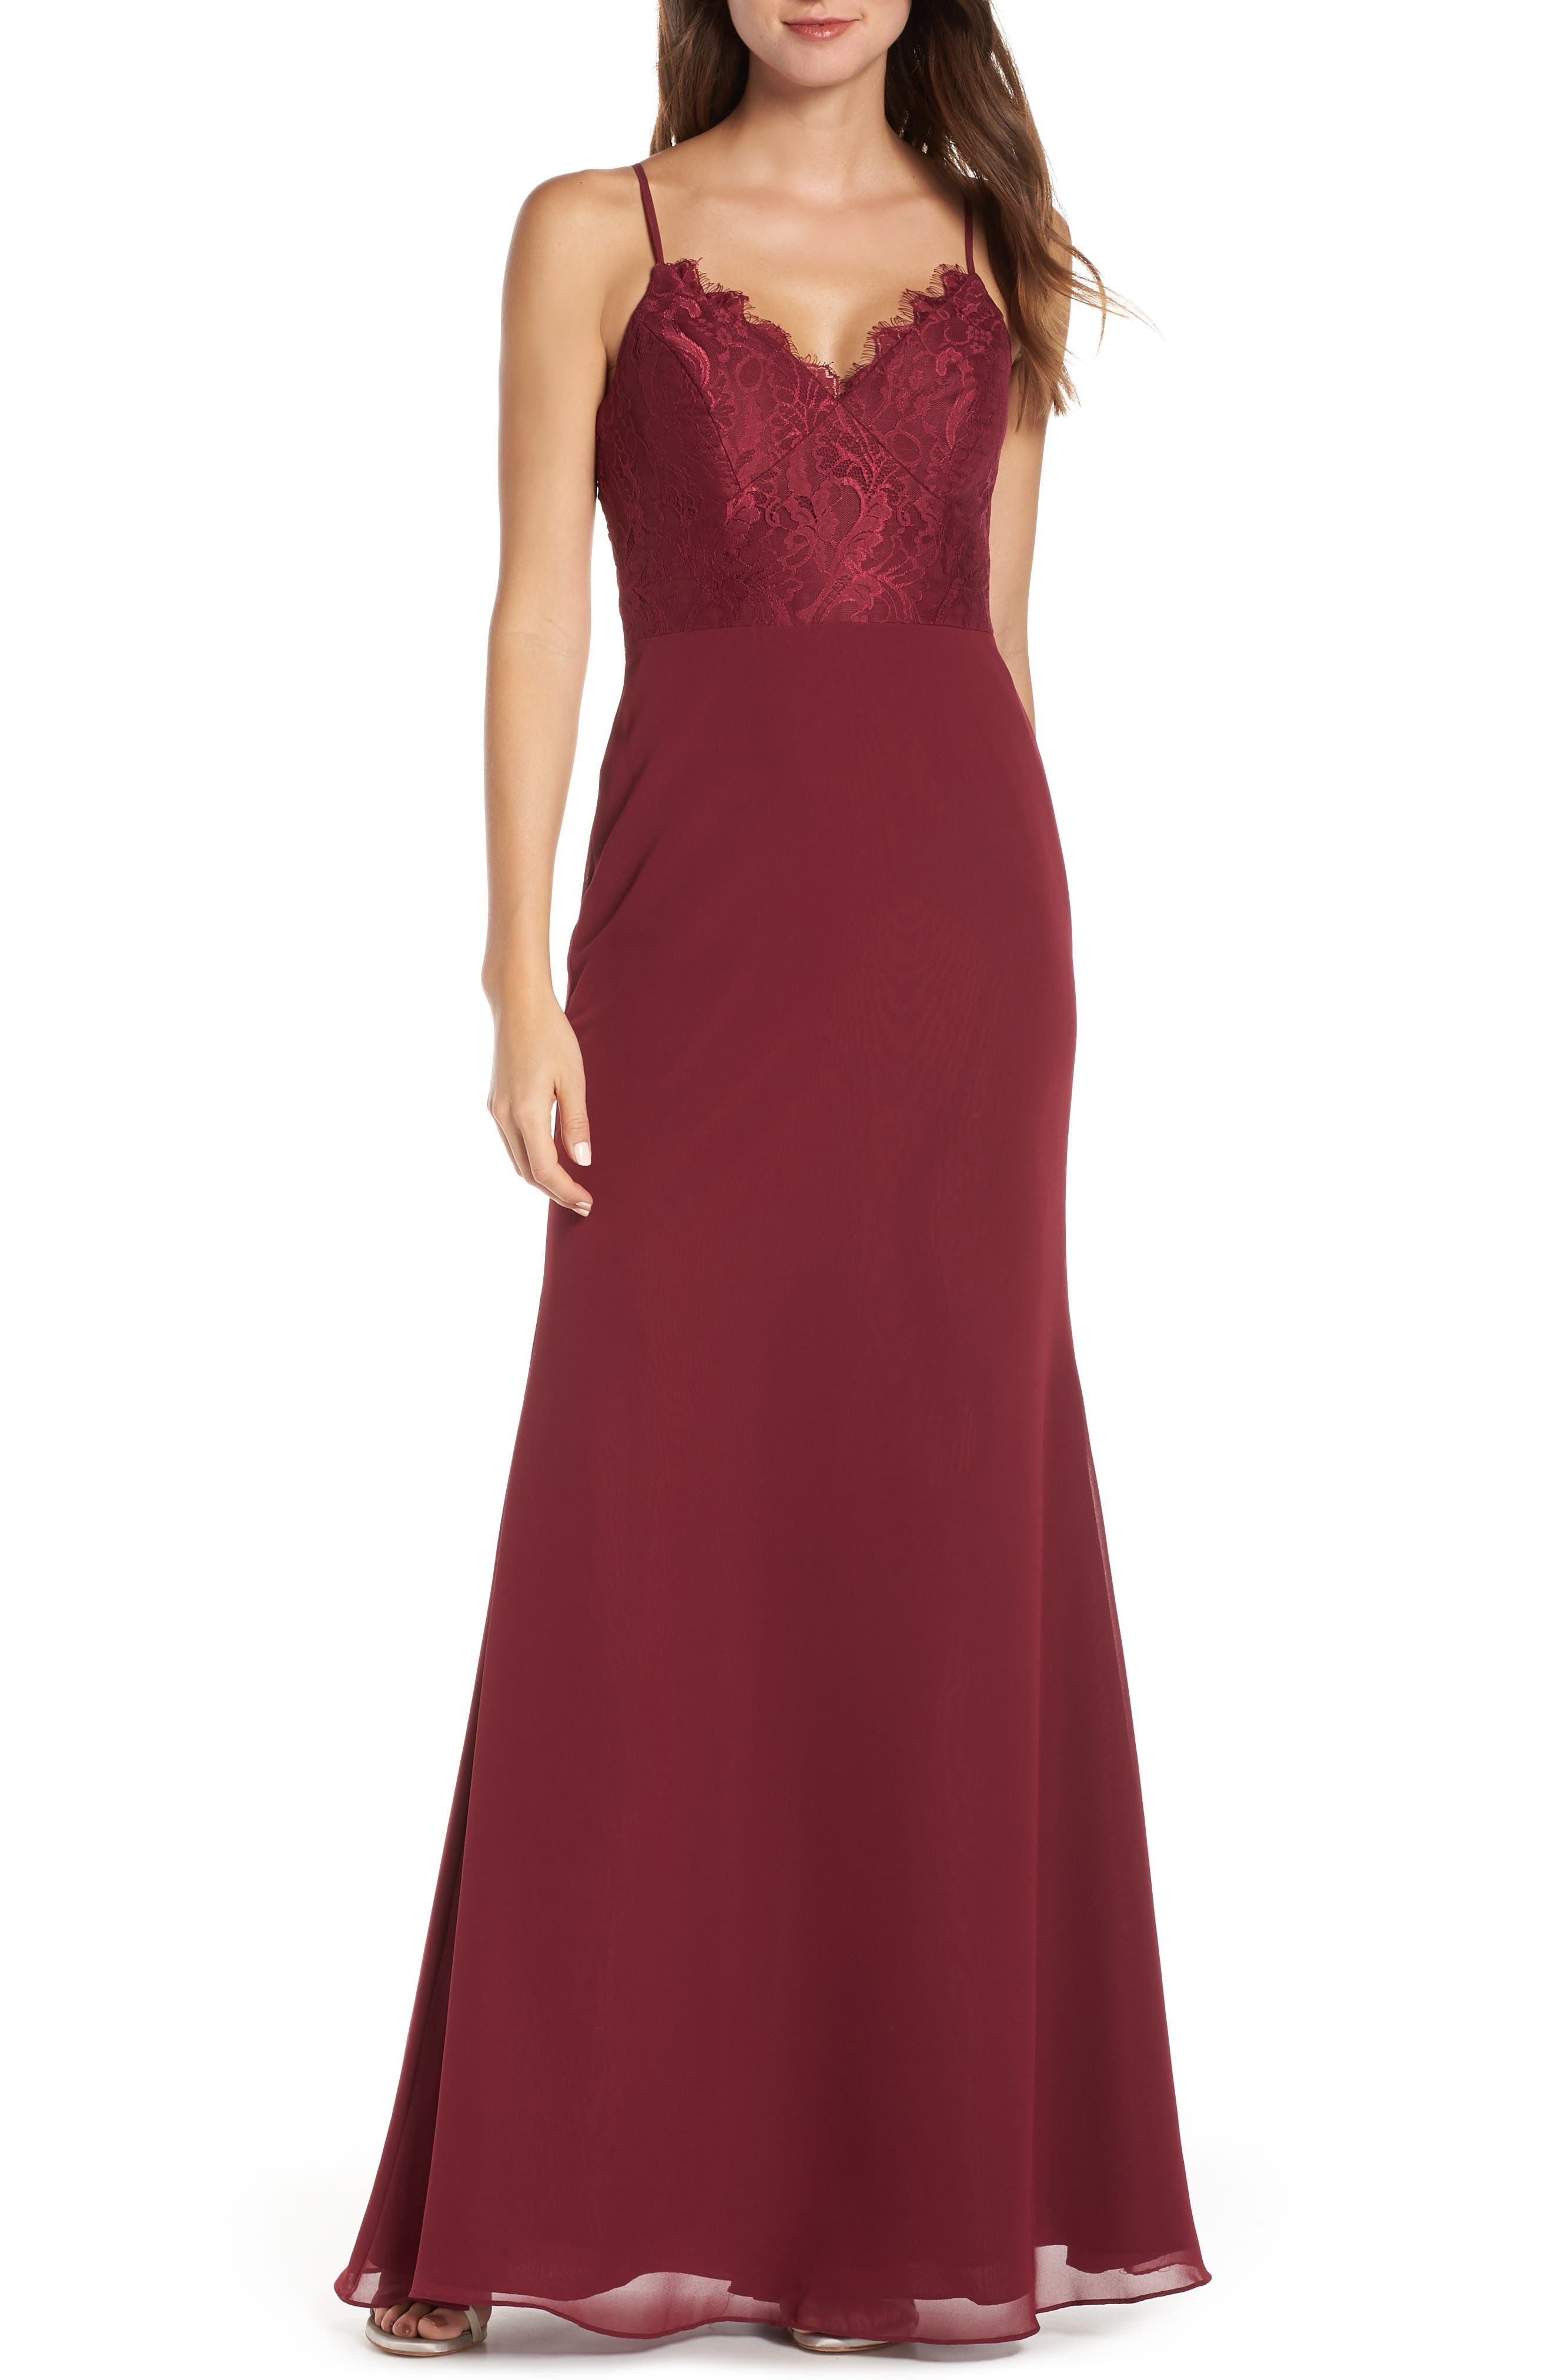 Hayley Paige Occasions Sleeveless Rose Lace & Chiffon Evening Dress, Burgundy